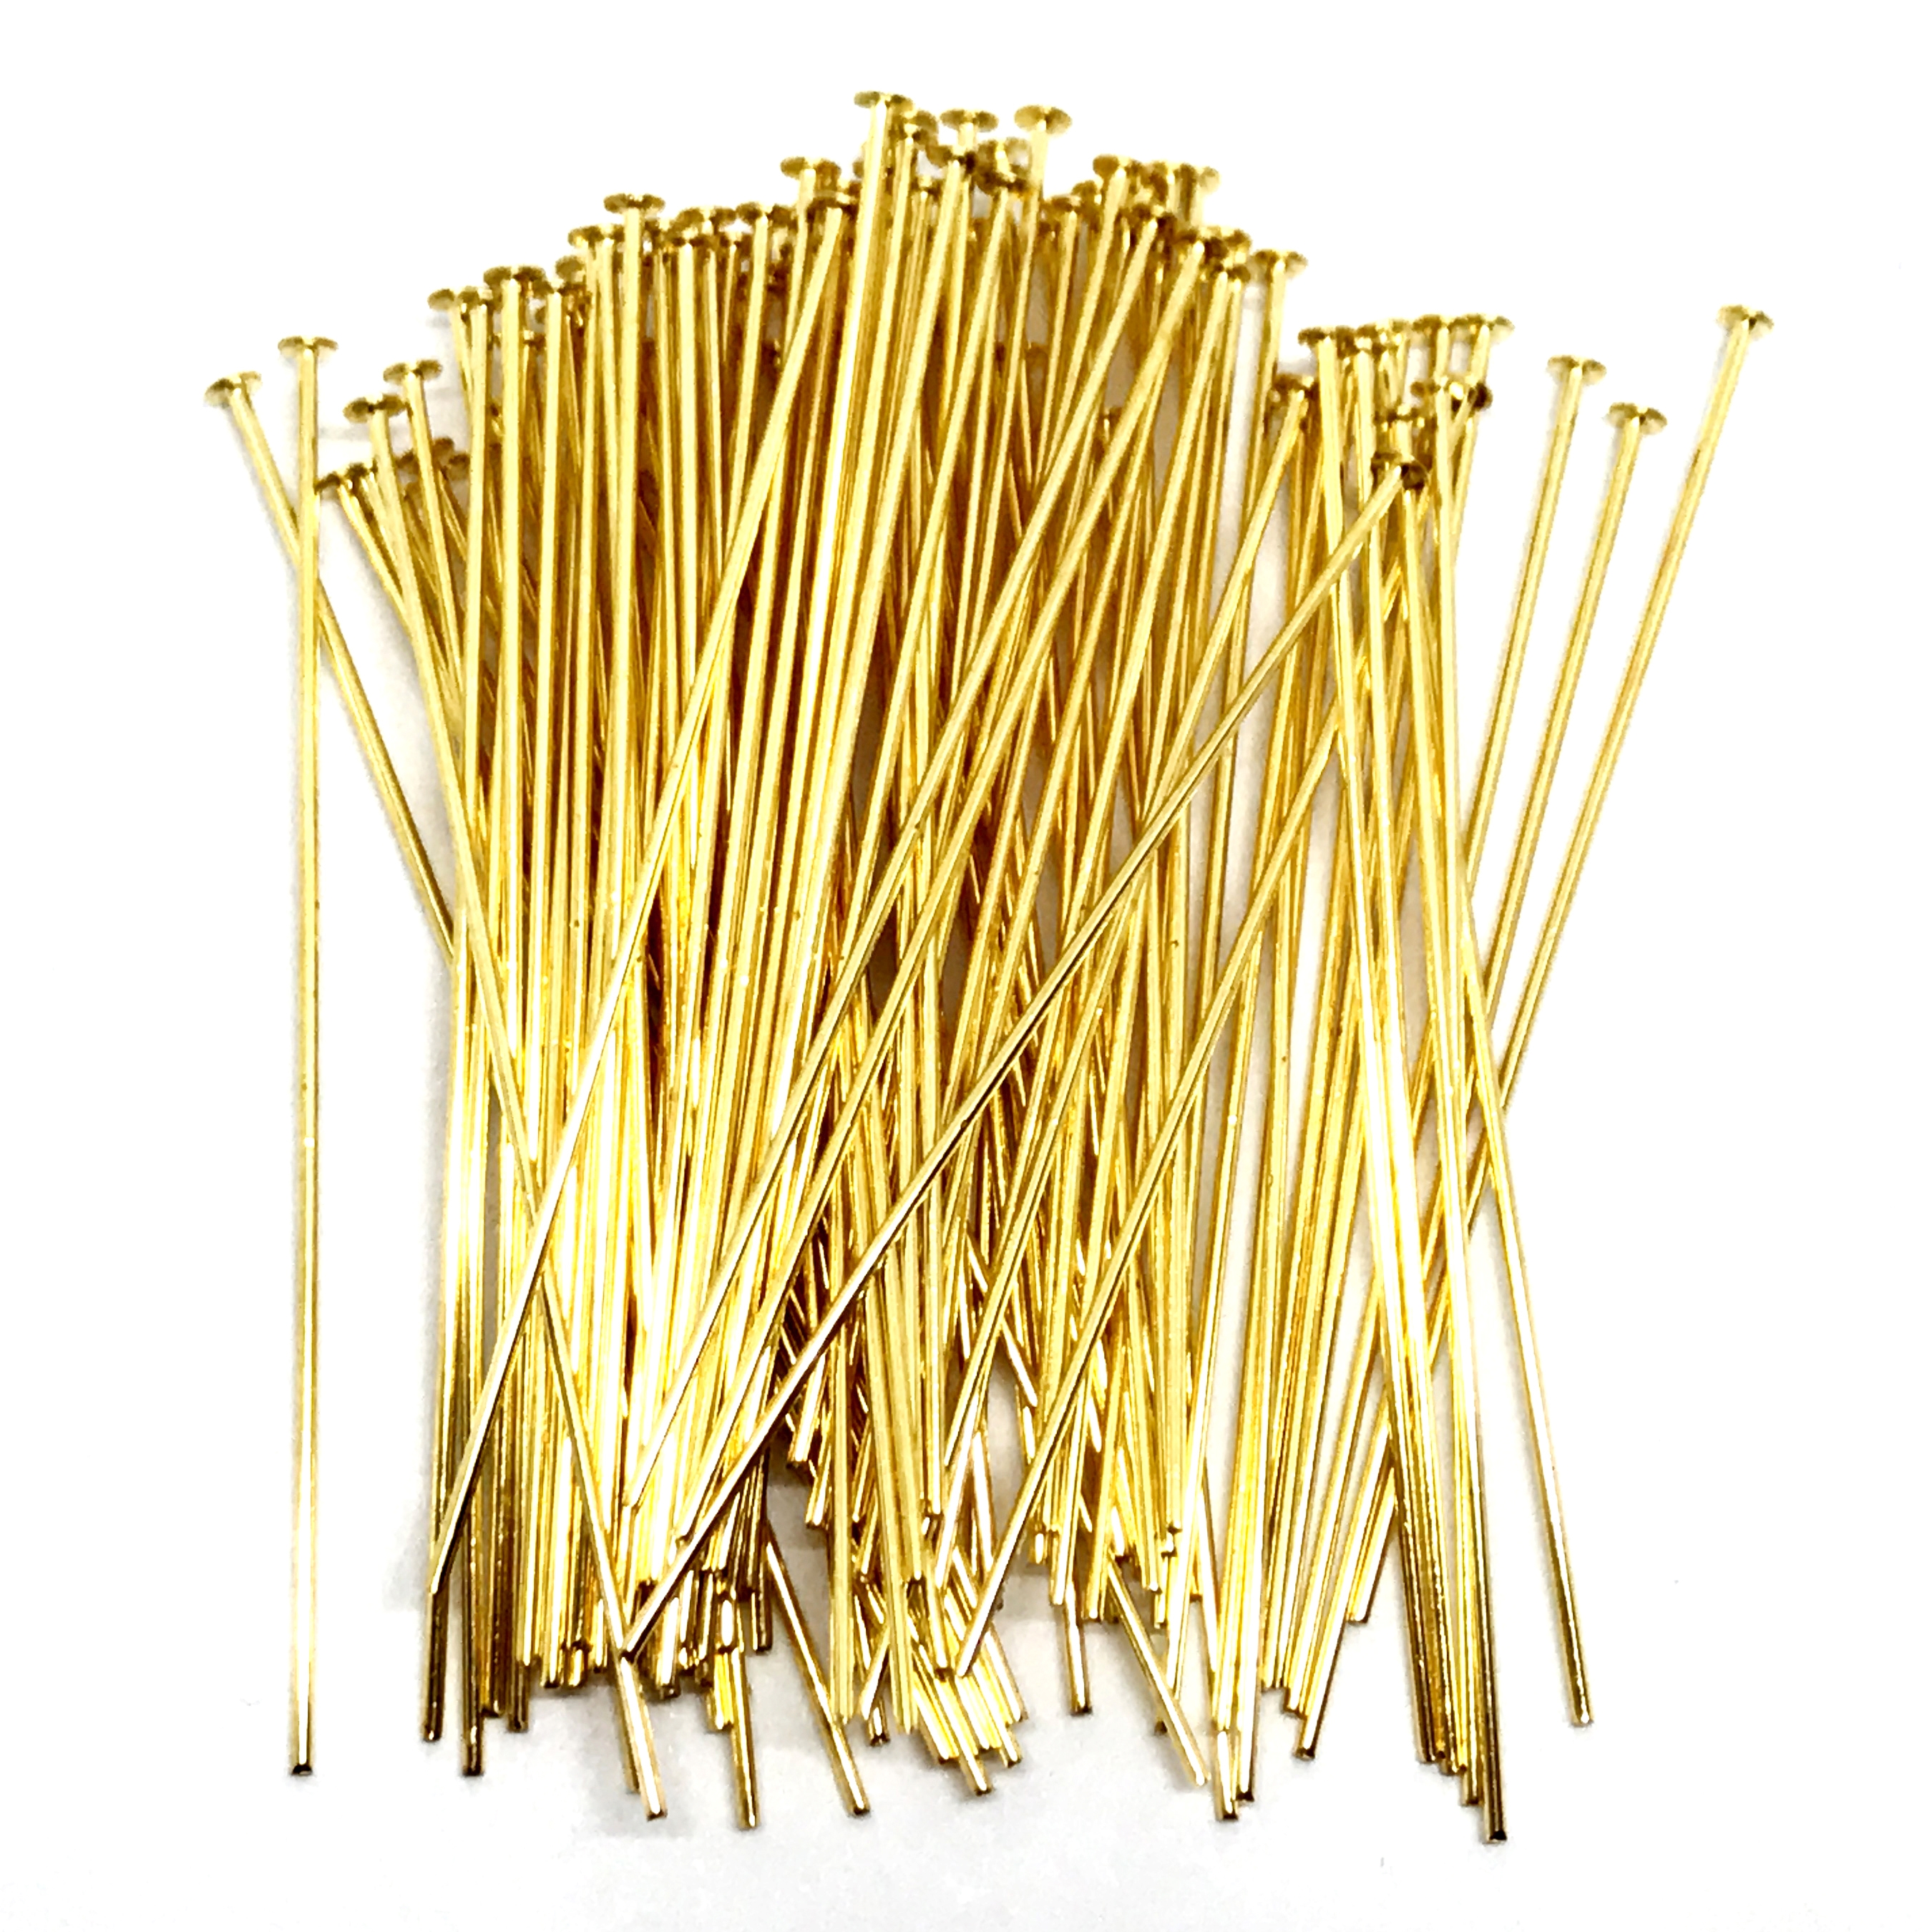 gold plated headpins, 2 inches, headpins, gold plated, jewelry supplies, 2 inches headpin, gold, vintage supplies, earring supplies, antique gold, US made, B'sue Boutiques, nickel free, jewelry supplies, jewelry findings, pins, gold headpins, 04058